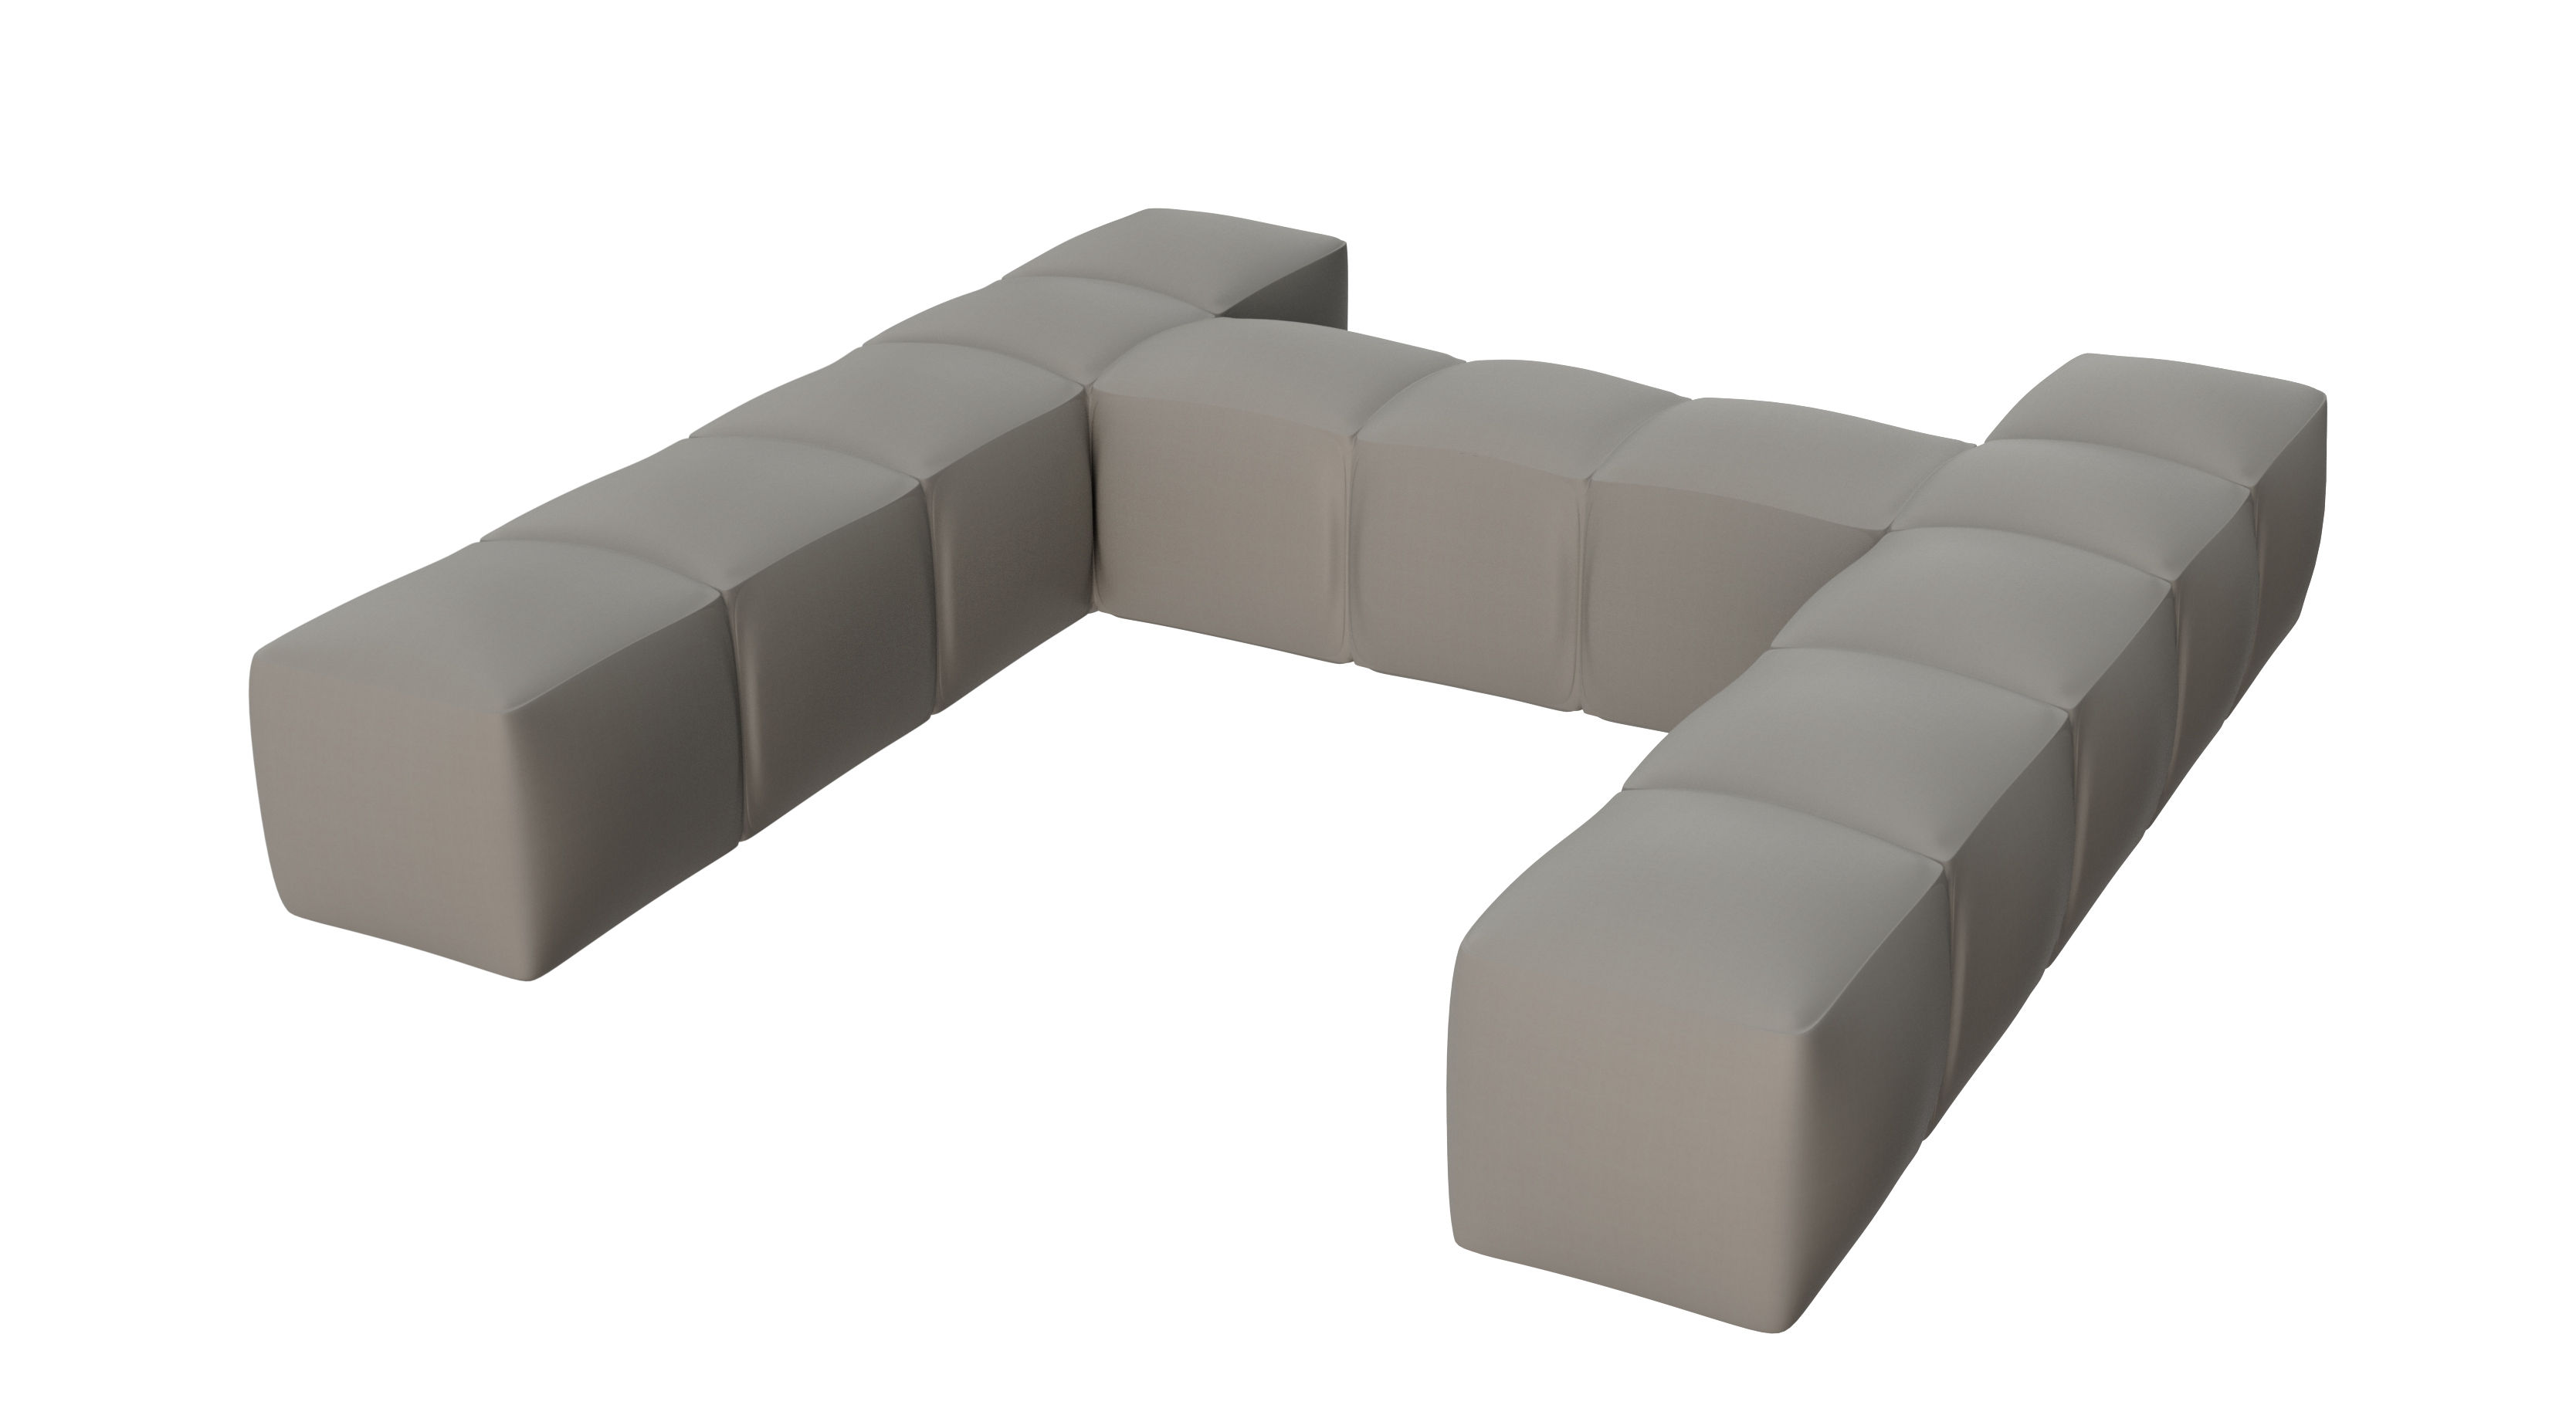 dossier gonflable pour matelas modul 39 air dossier gris pigro felice. Black Bedroom Furniture Sets. Home Design Ideas